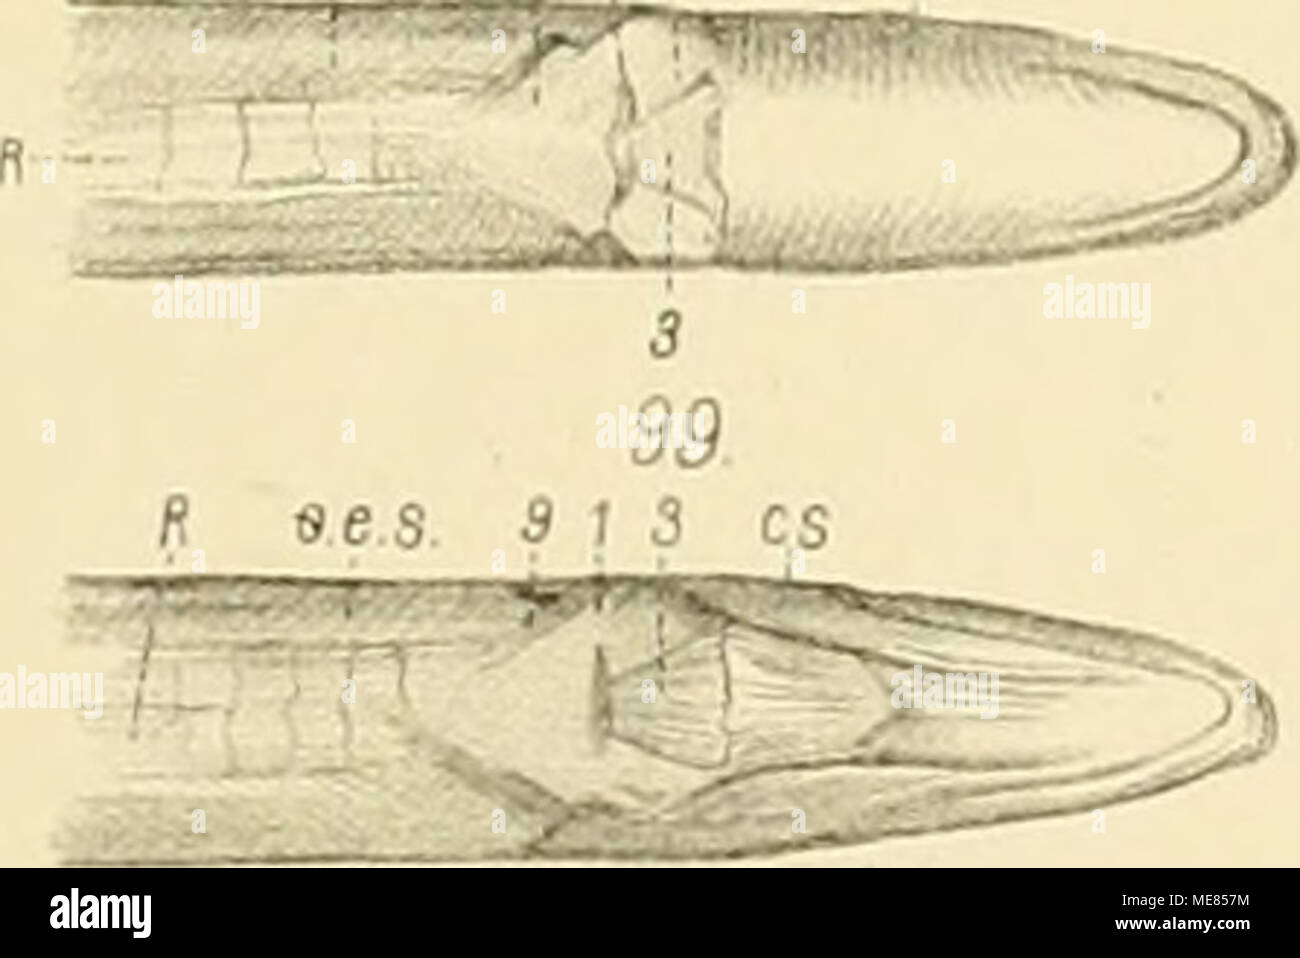 Bookyear1870 Stock Photos & Bookyear1870 Stock Images - Alamy